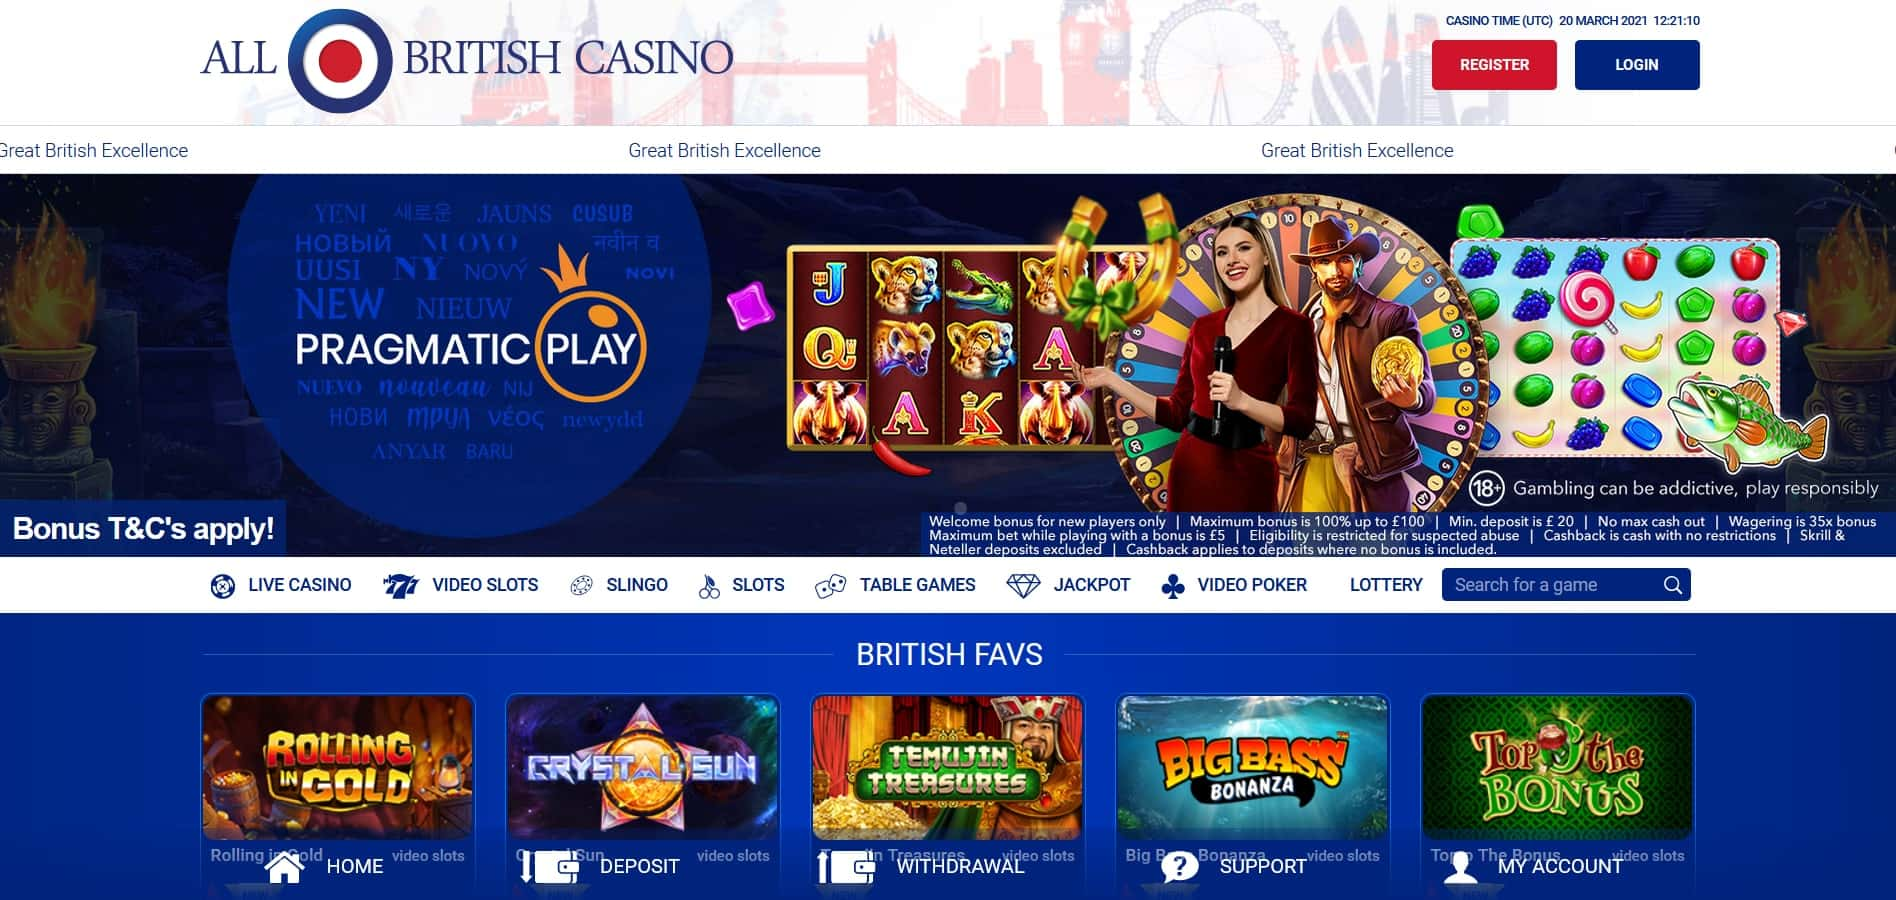 A Complete Review of All British Casino